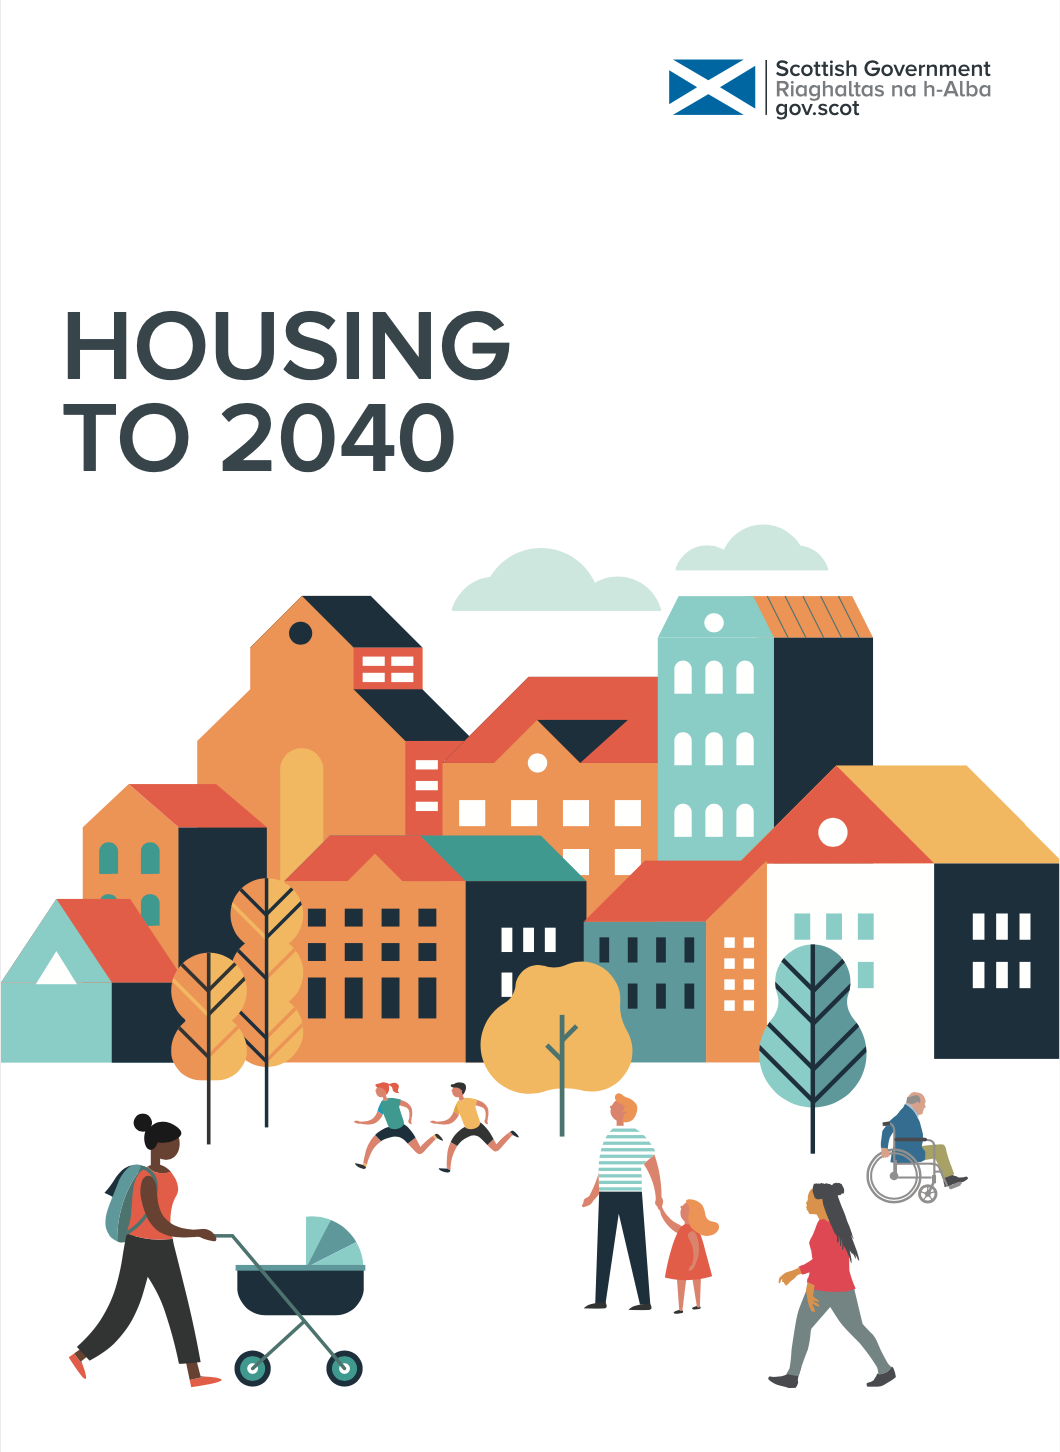 Housing to 2040